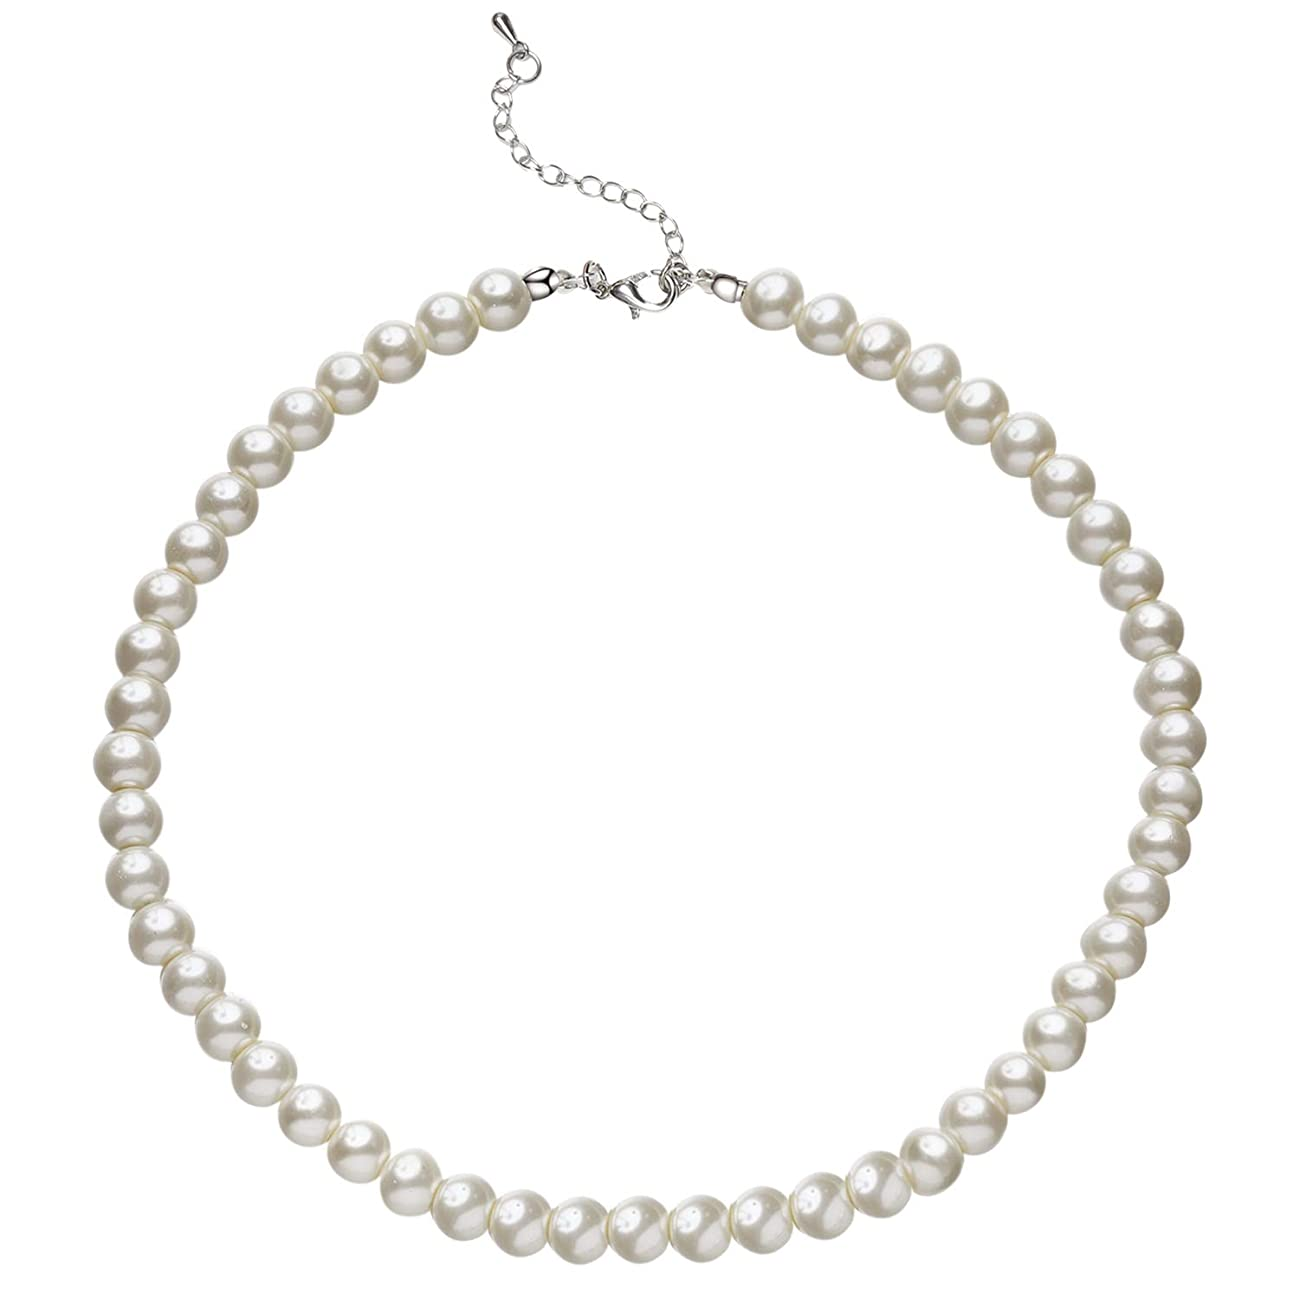 BABEYOND Round Imitation Pearl Necklace Wedding Pearl Necklace for Brides White